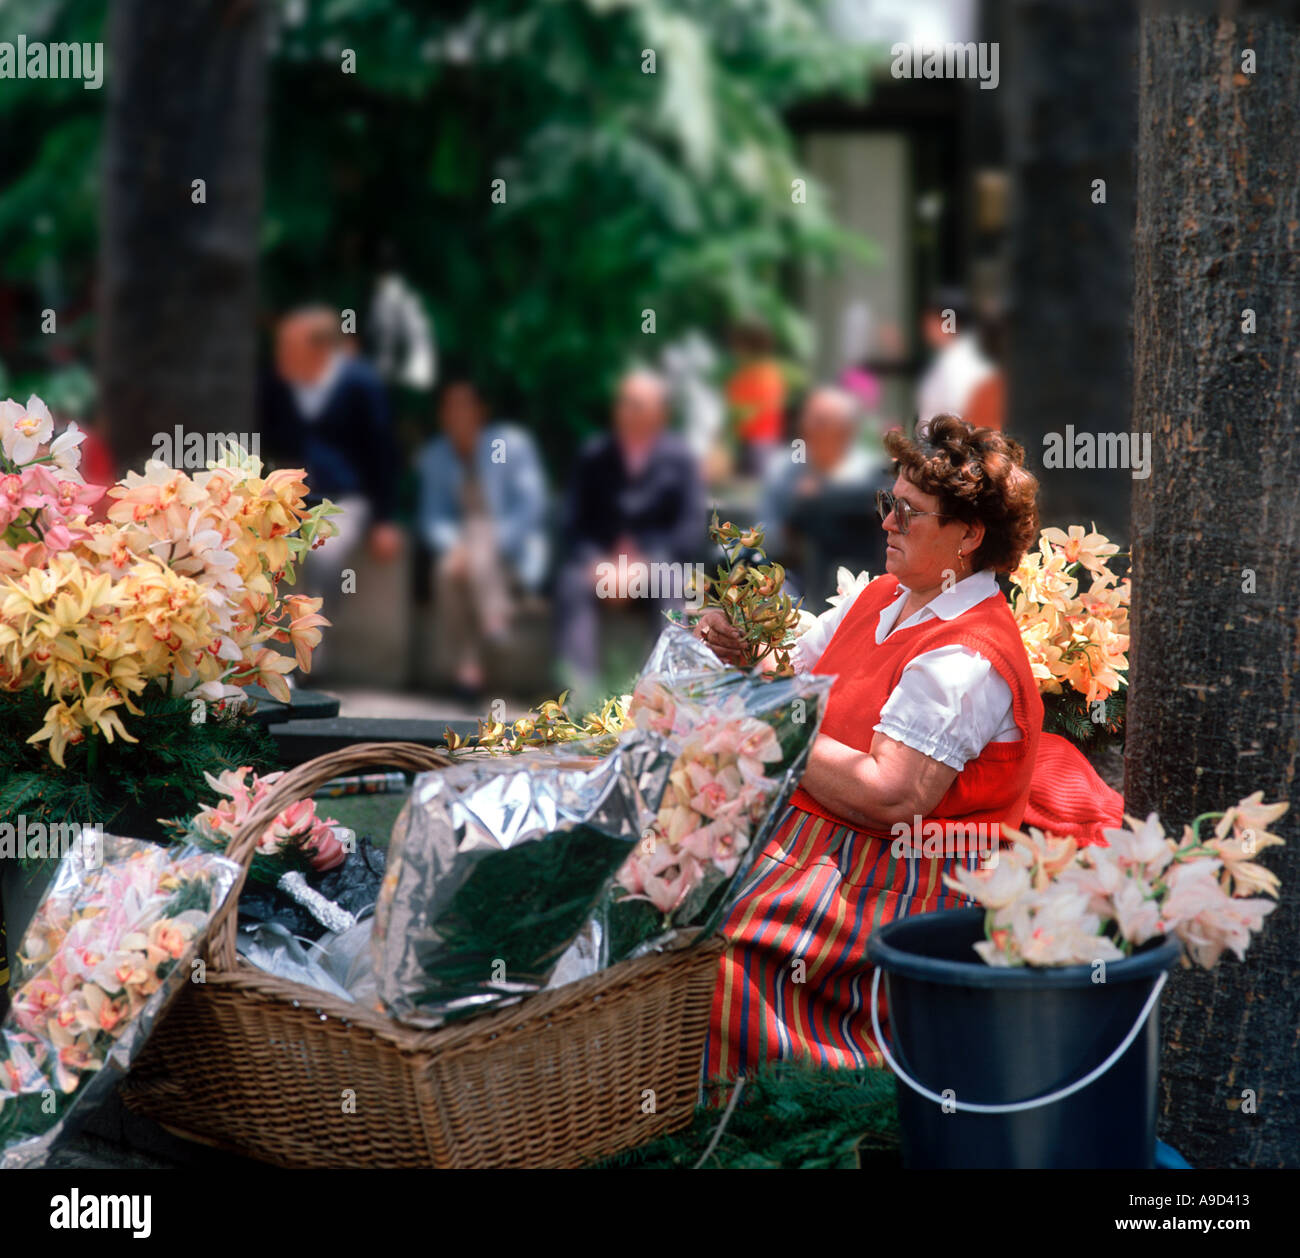 Traditional flower seller outside the Cathedral, Funchal, Madeira, Portugal - Stock Image